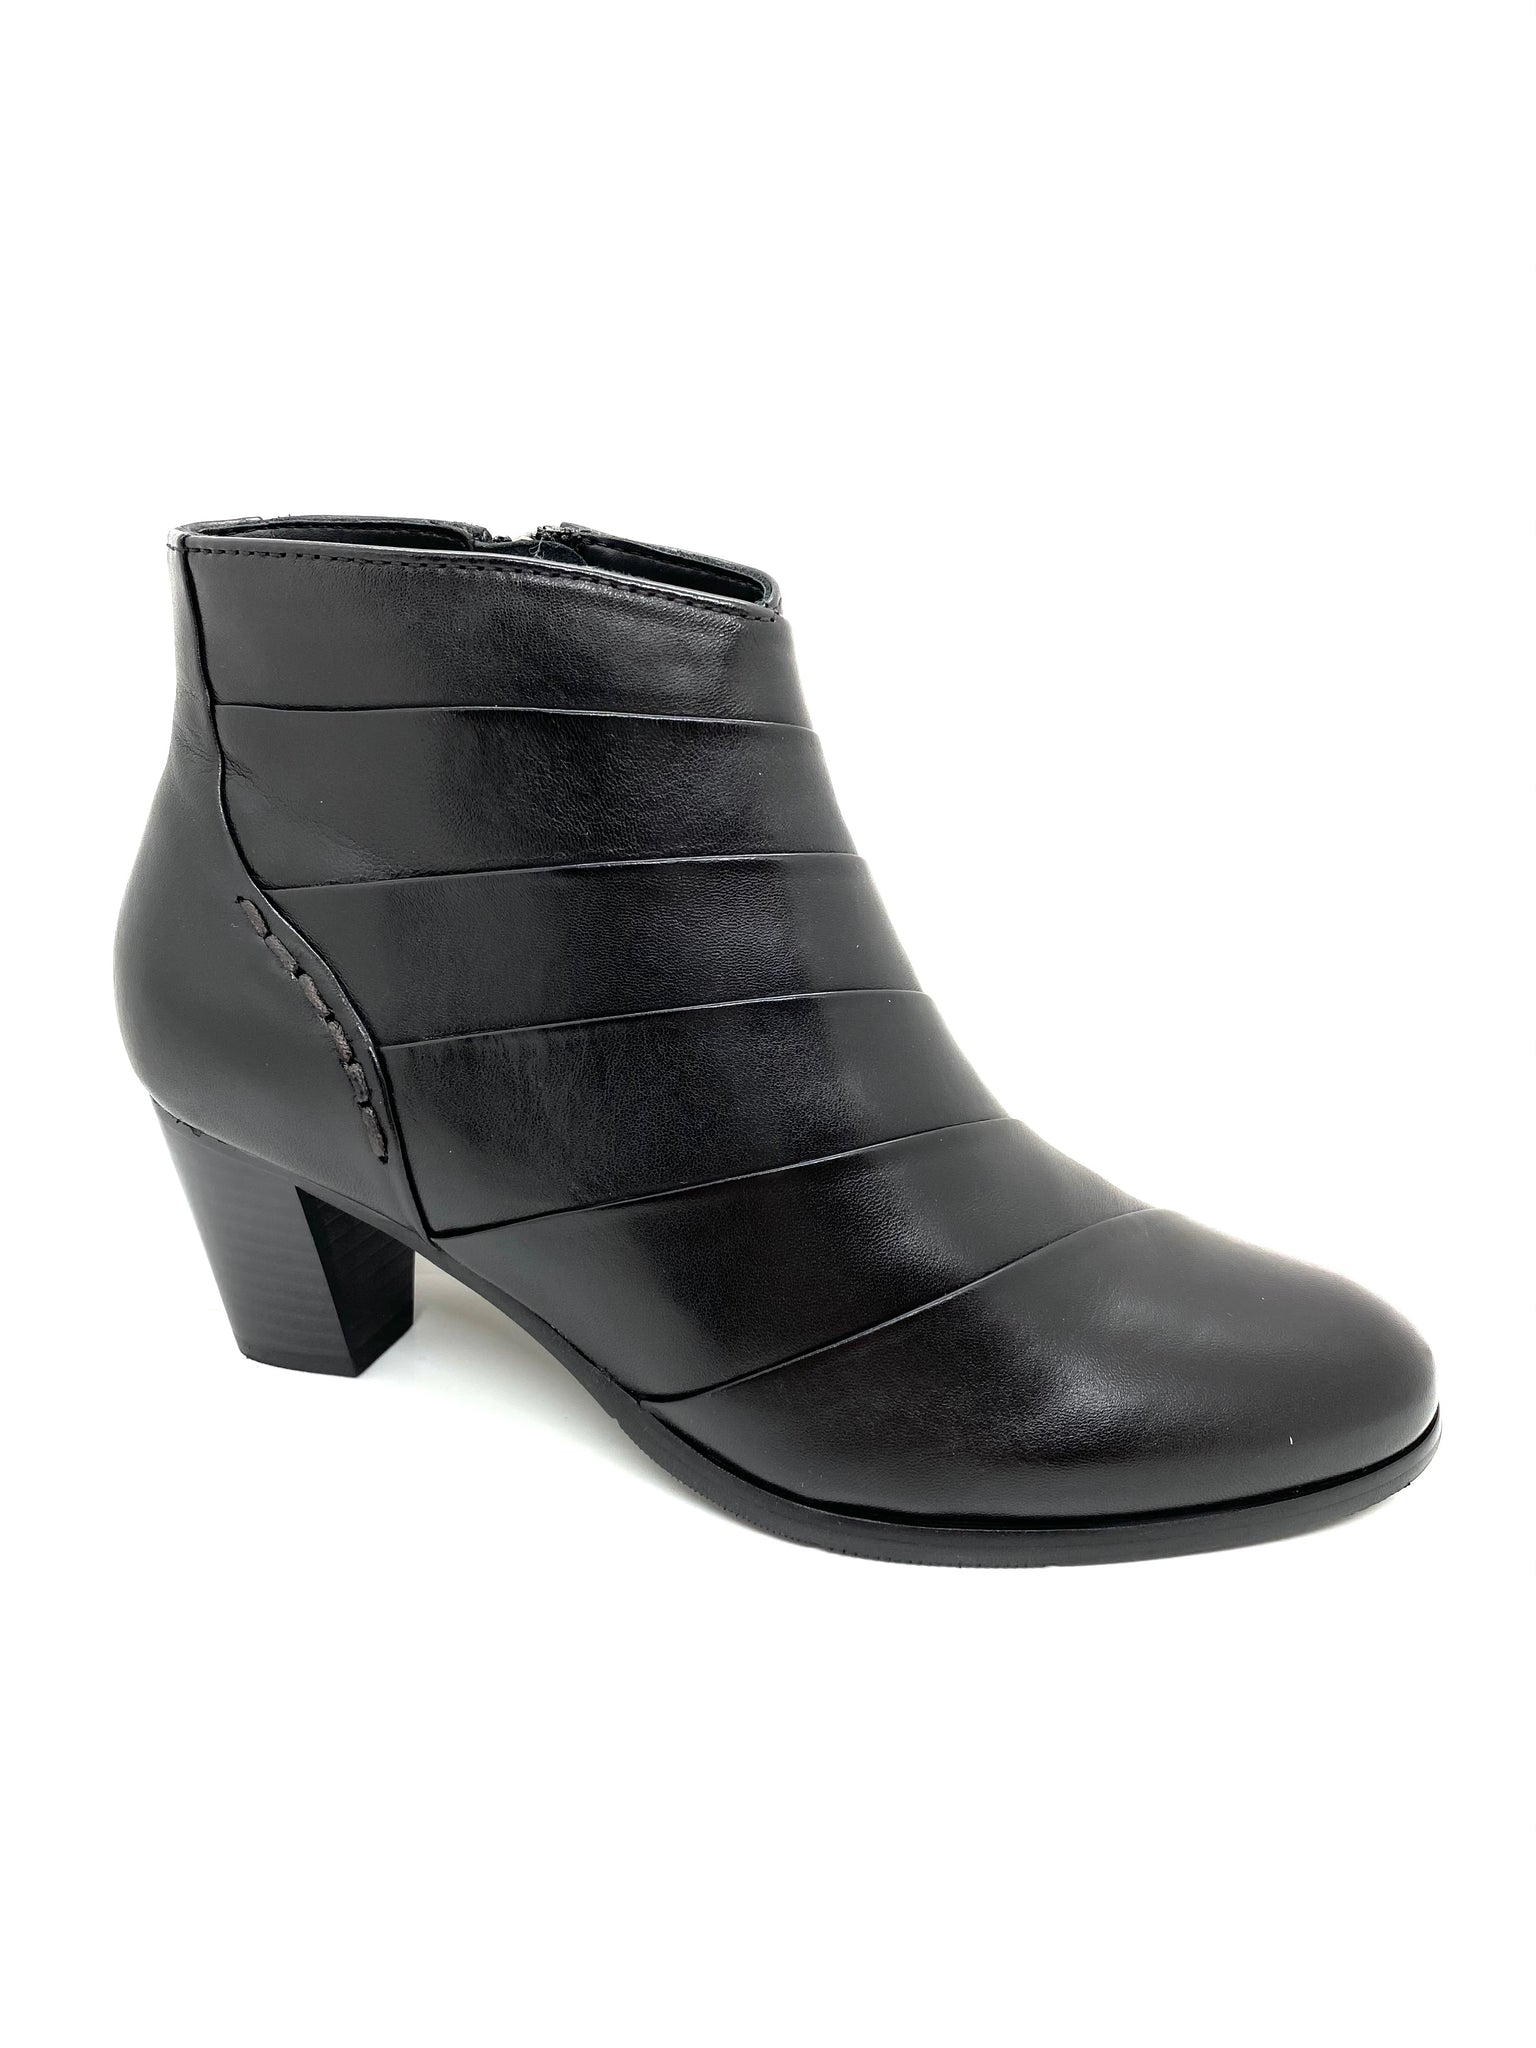 Regarde Le Ciel Sonia Ladies Ankle Boot Black